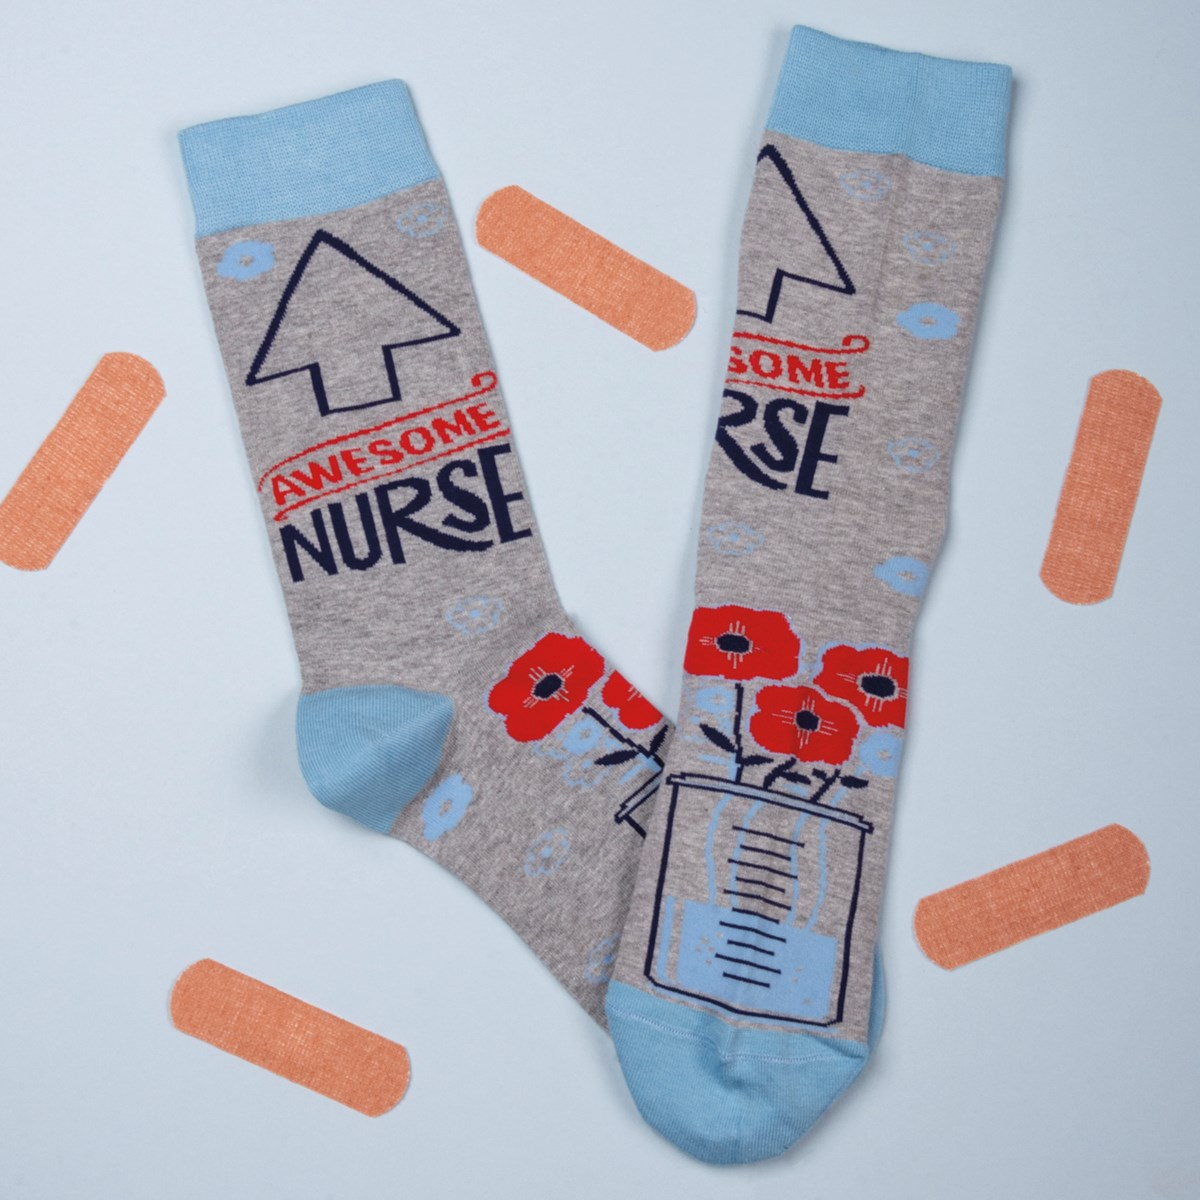 Socks - Awesome Nurse - One Size Fits Most - Cotton, Nylon, Spandex